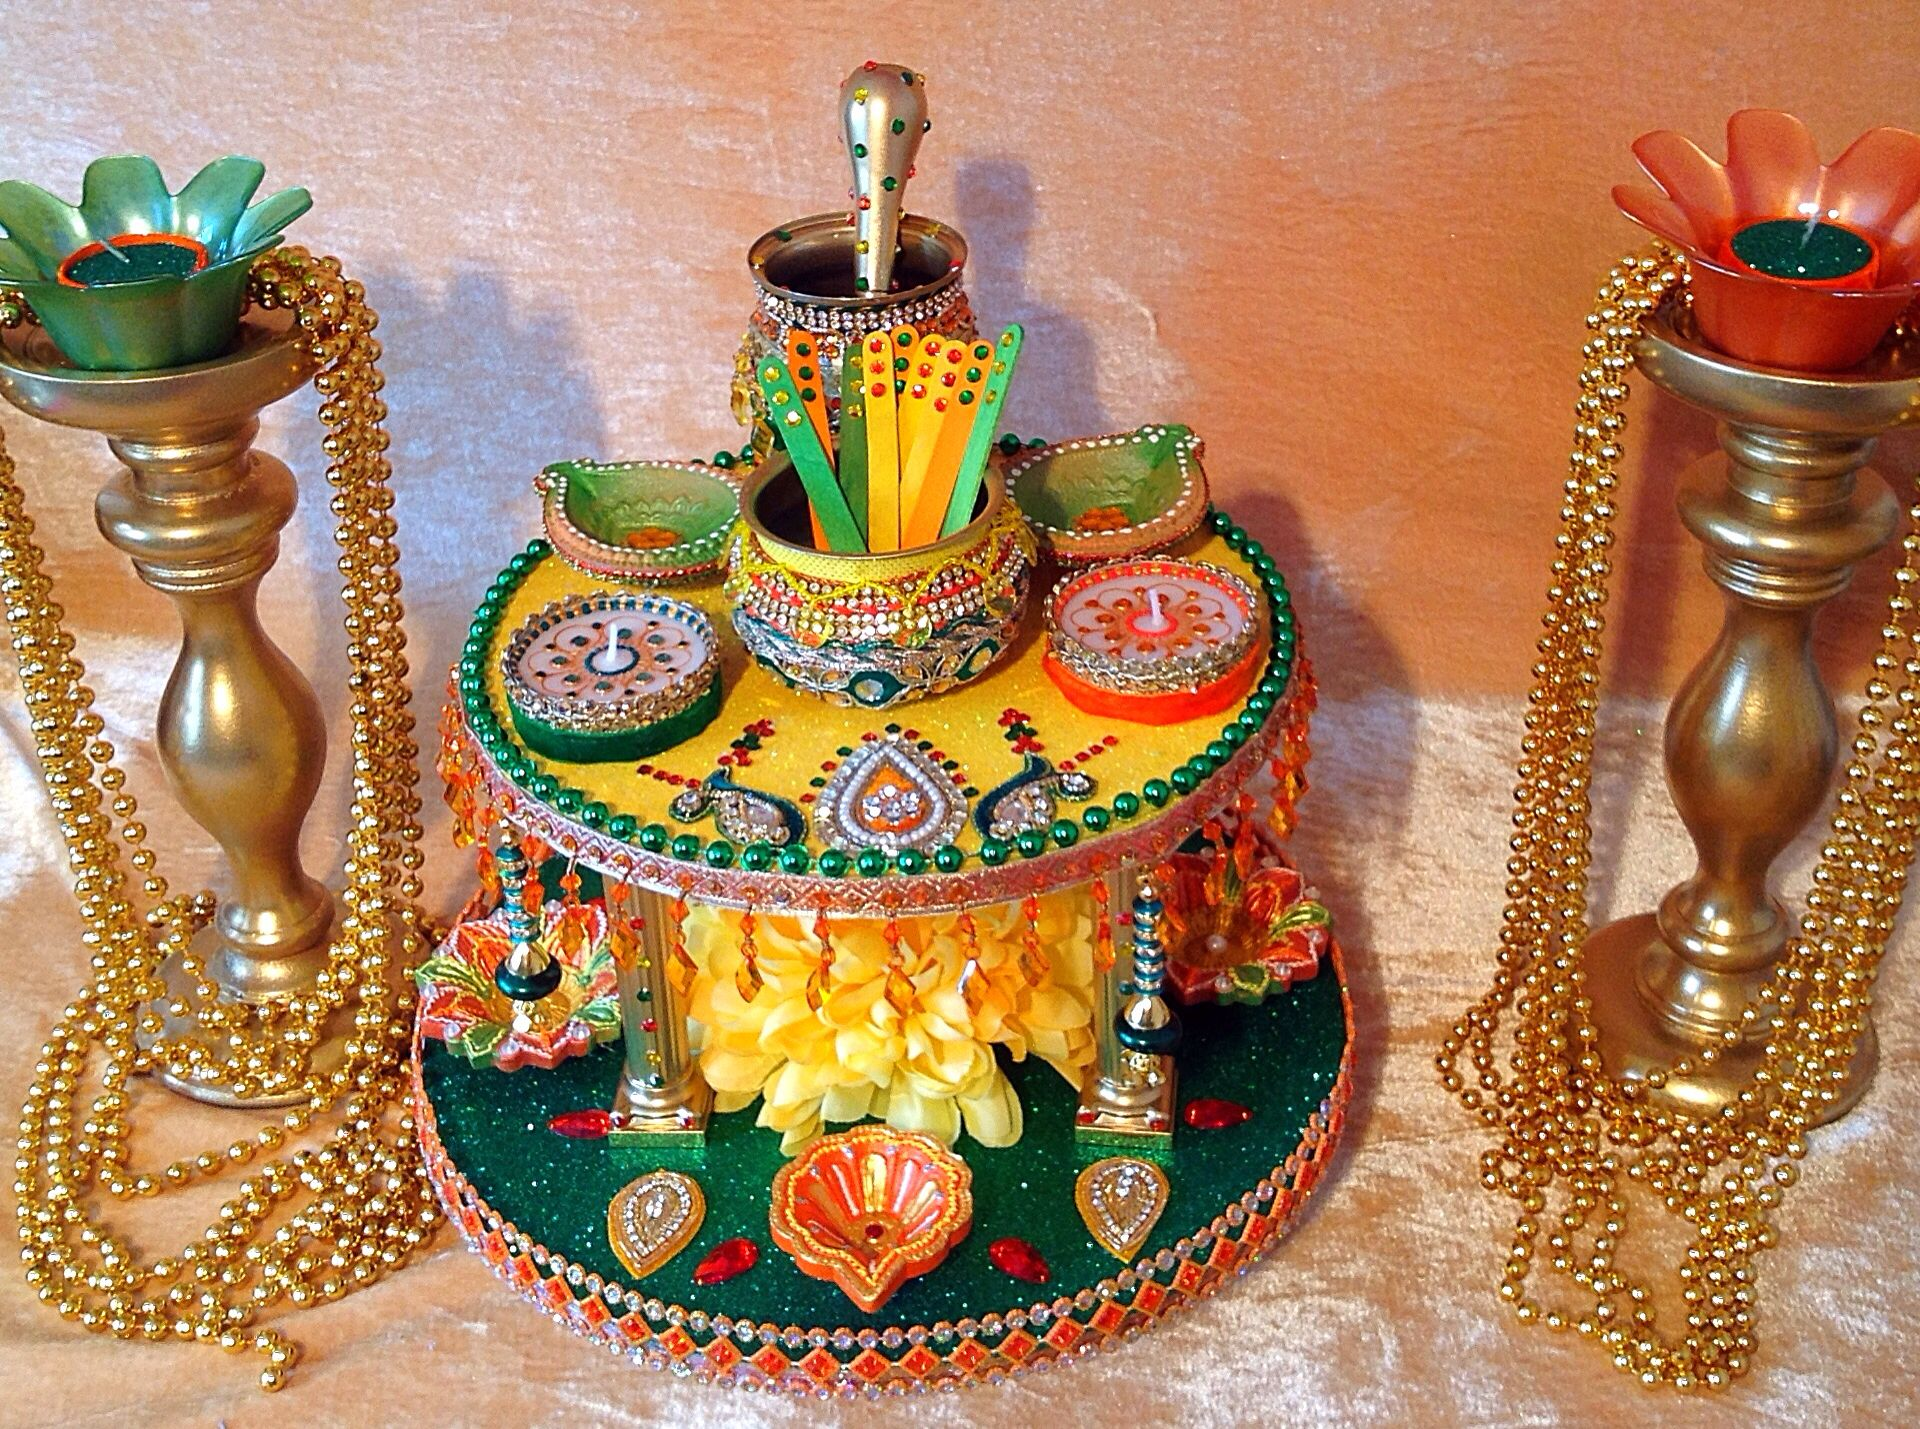 Diy Mehndi Plates : A stunning double tiered mehndi plate see my facebook page